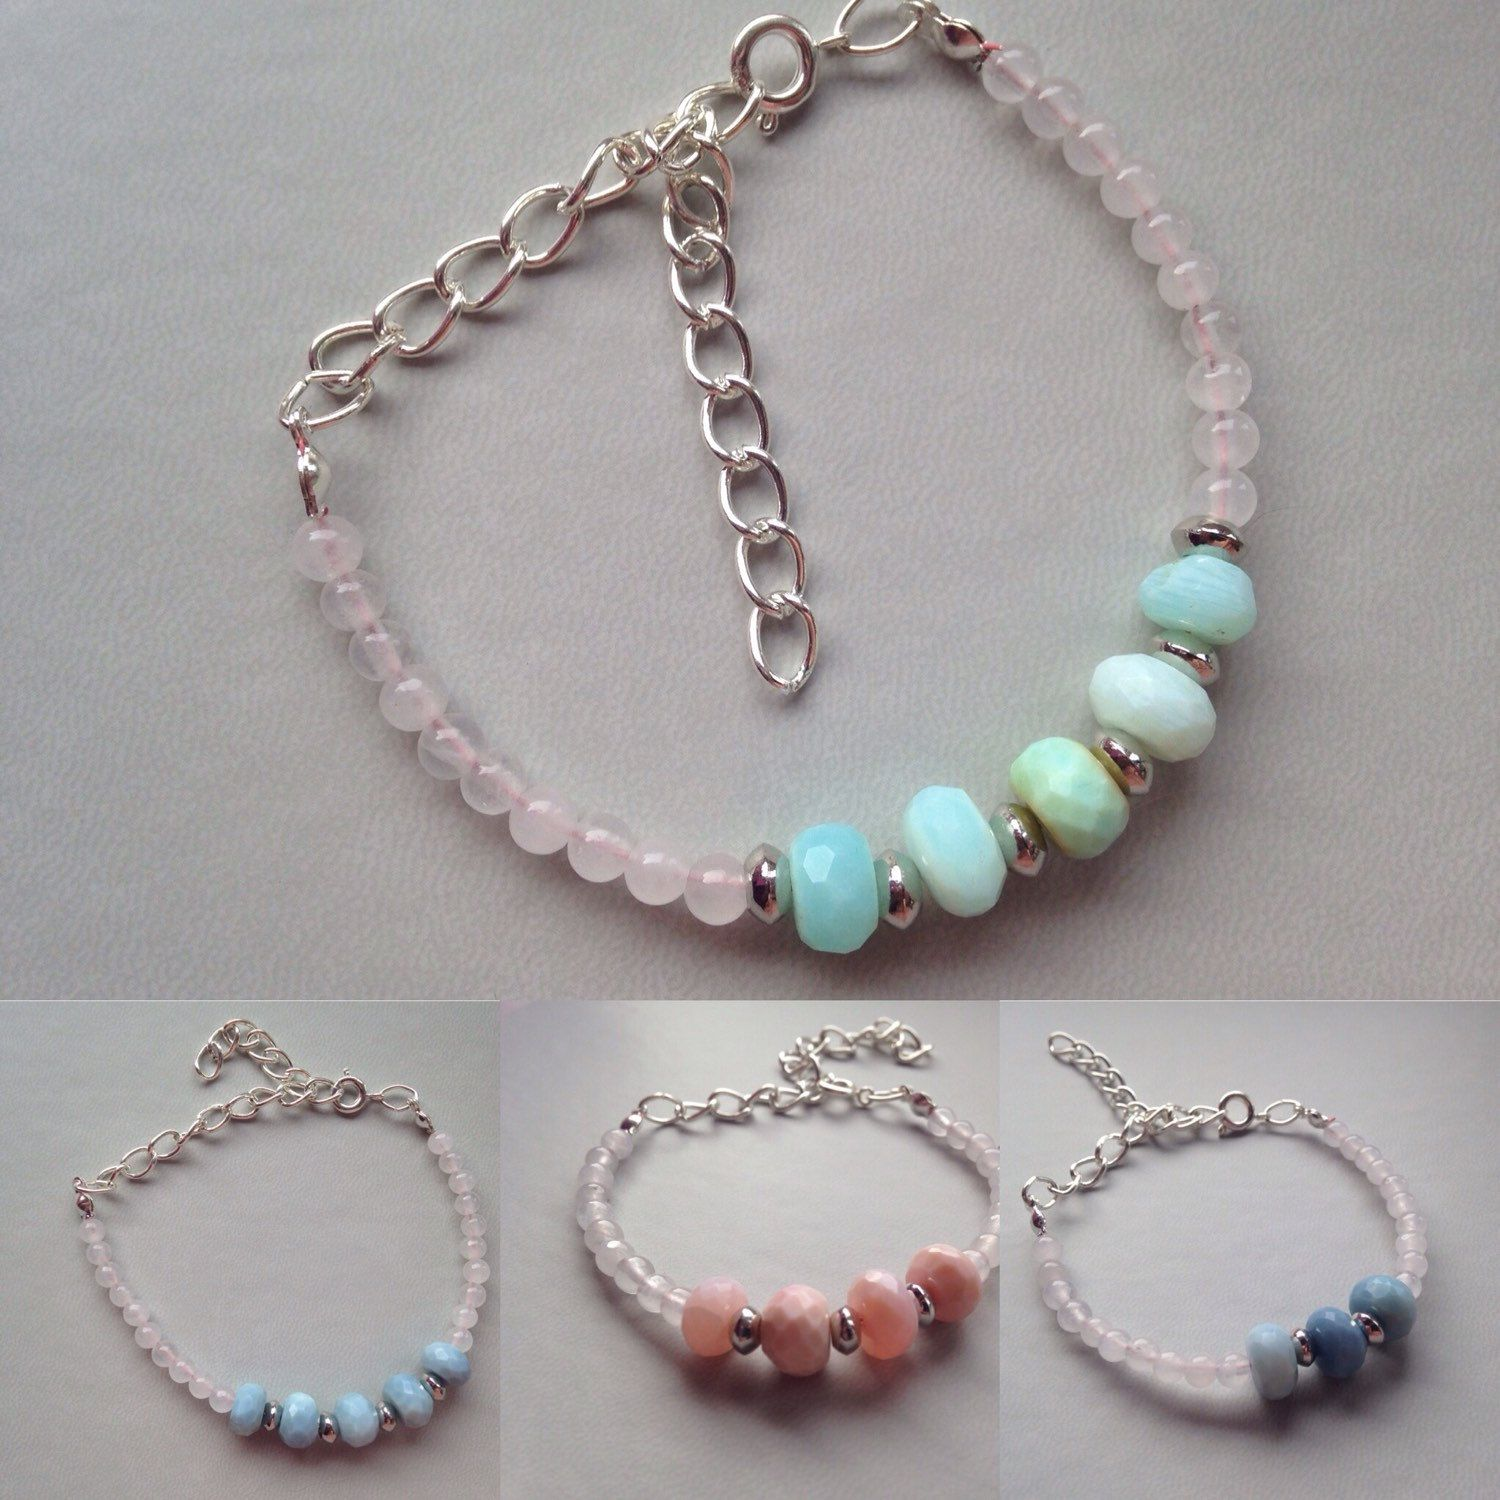 New Peruvian opal & snow quartz bracelets with oval link extension chain. Available in pink soft blue and pastel green